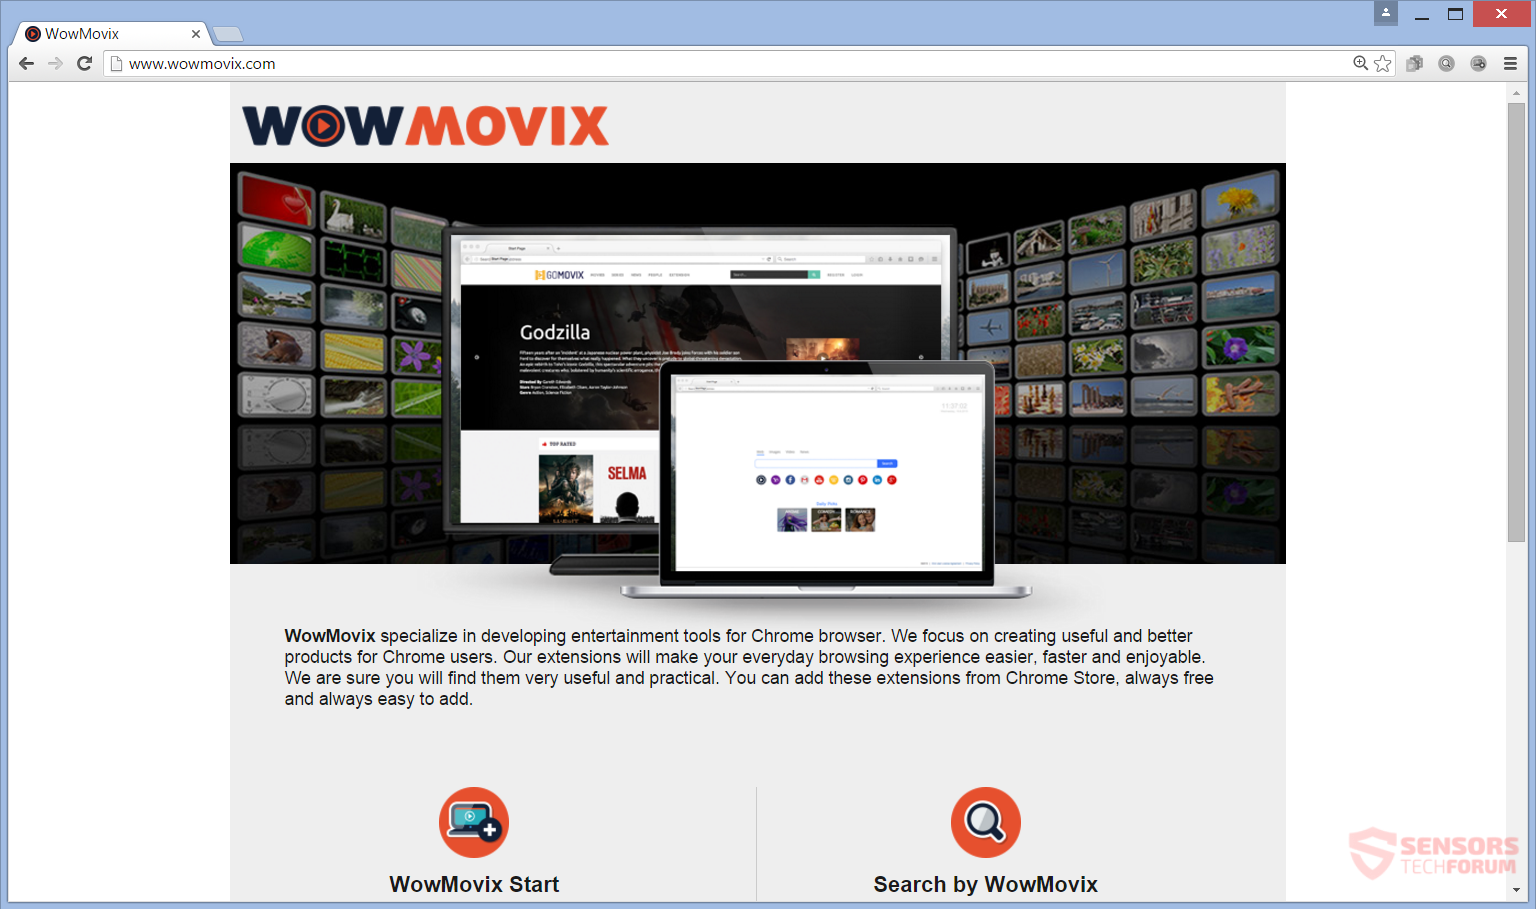 STF-wowmovix-gomovix-com-wow-movix-searchalgo-com-search-algo-main-site-hijacker